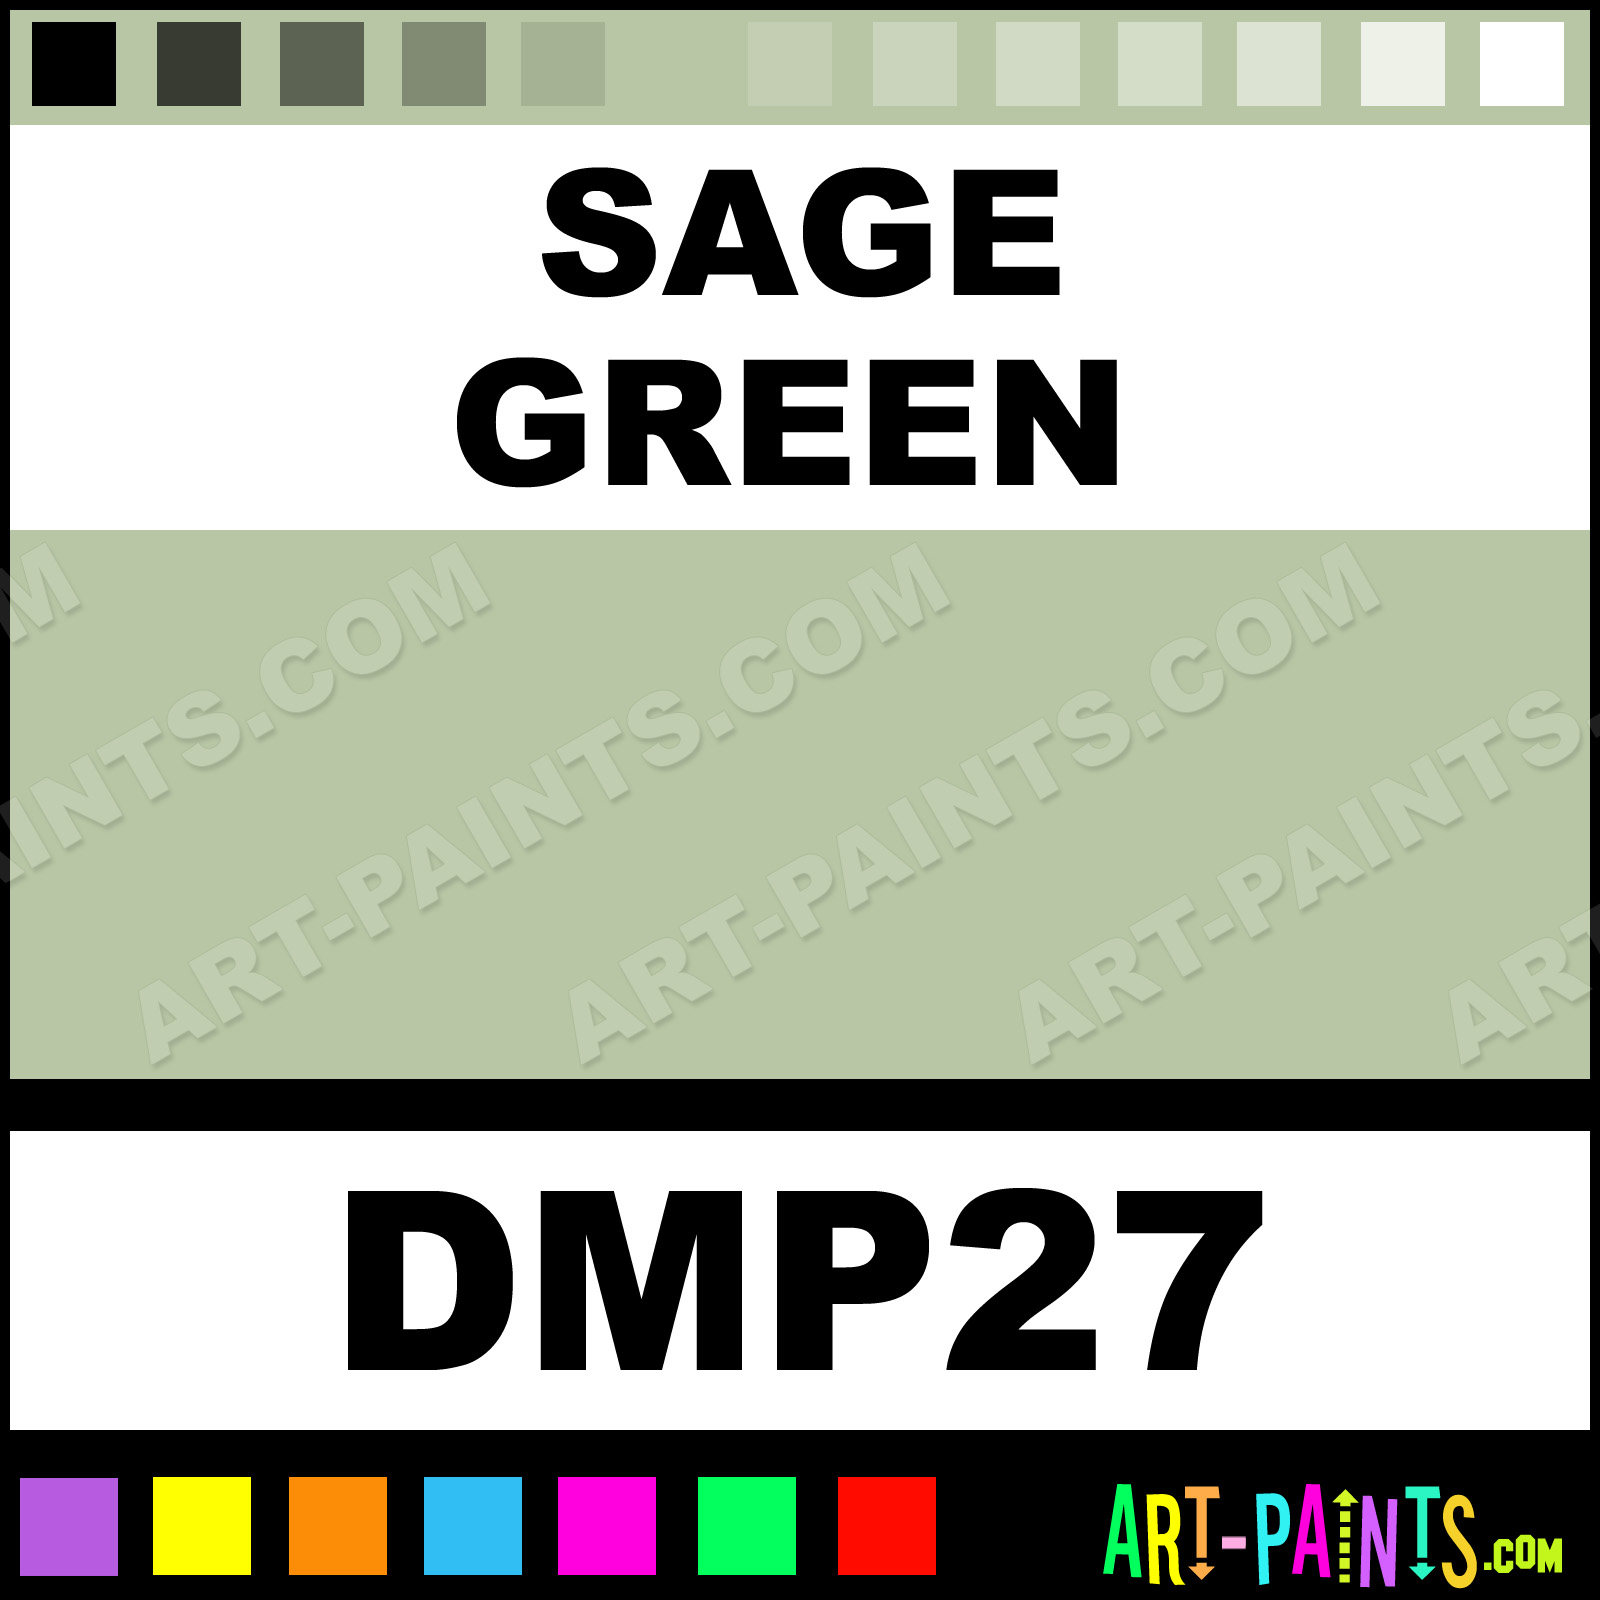 no prep metal paints and metallic paints dmp27 sage green paint. Black Bedroom Furniture Sets. Home Design Ideas